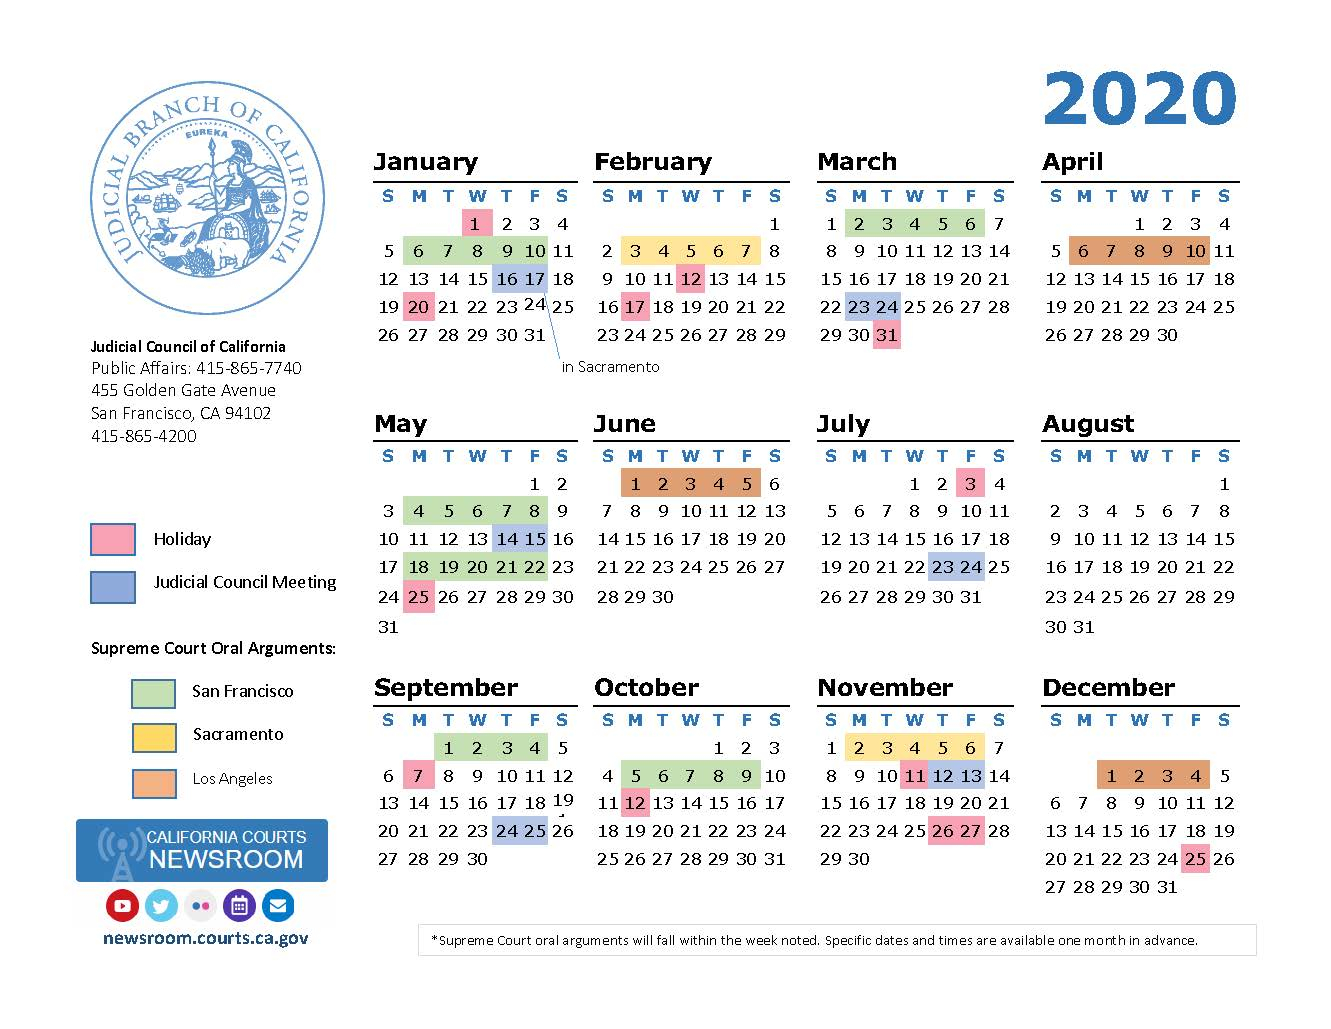 2020 California Courts Calendar | California Courts Newsroom throughout Los Angeles Suprior Court Calendar